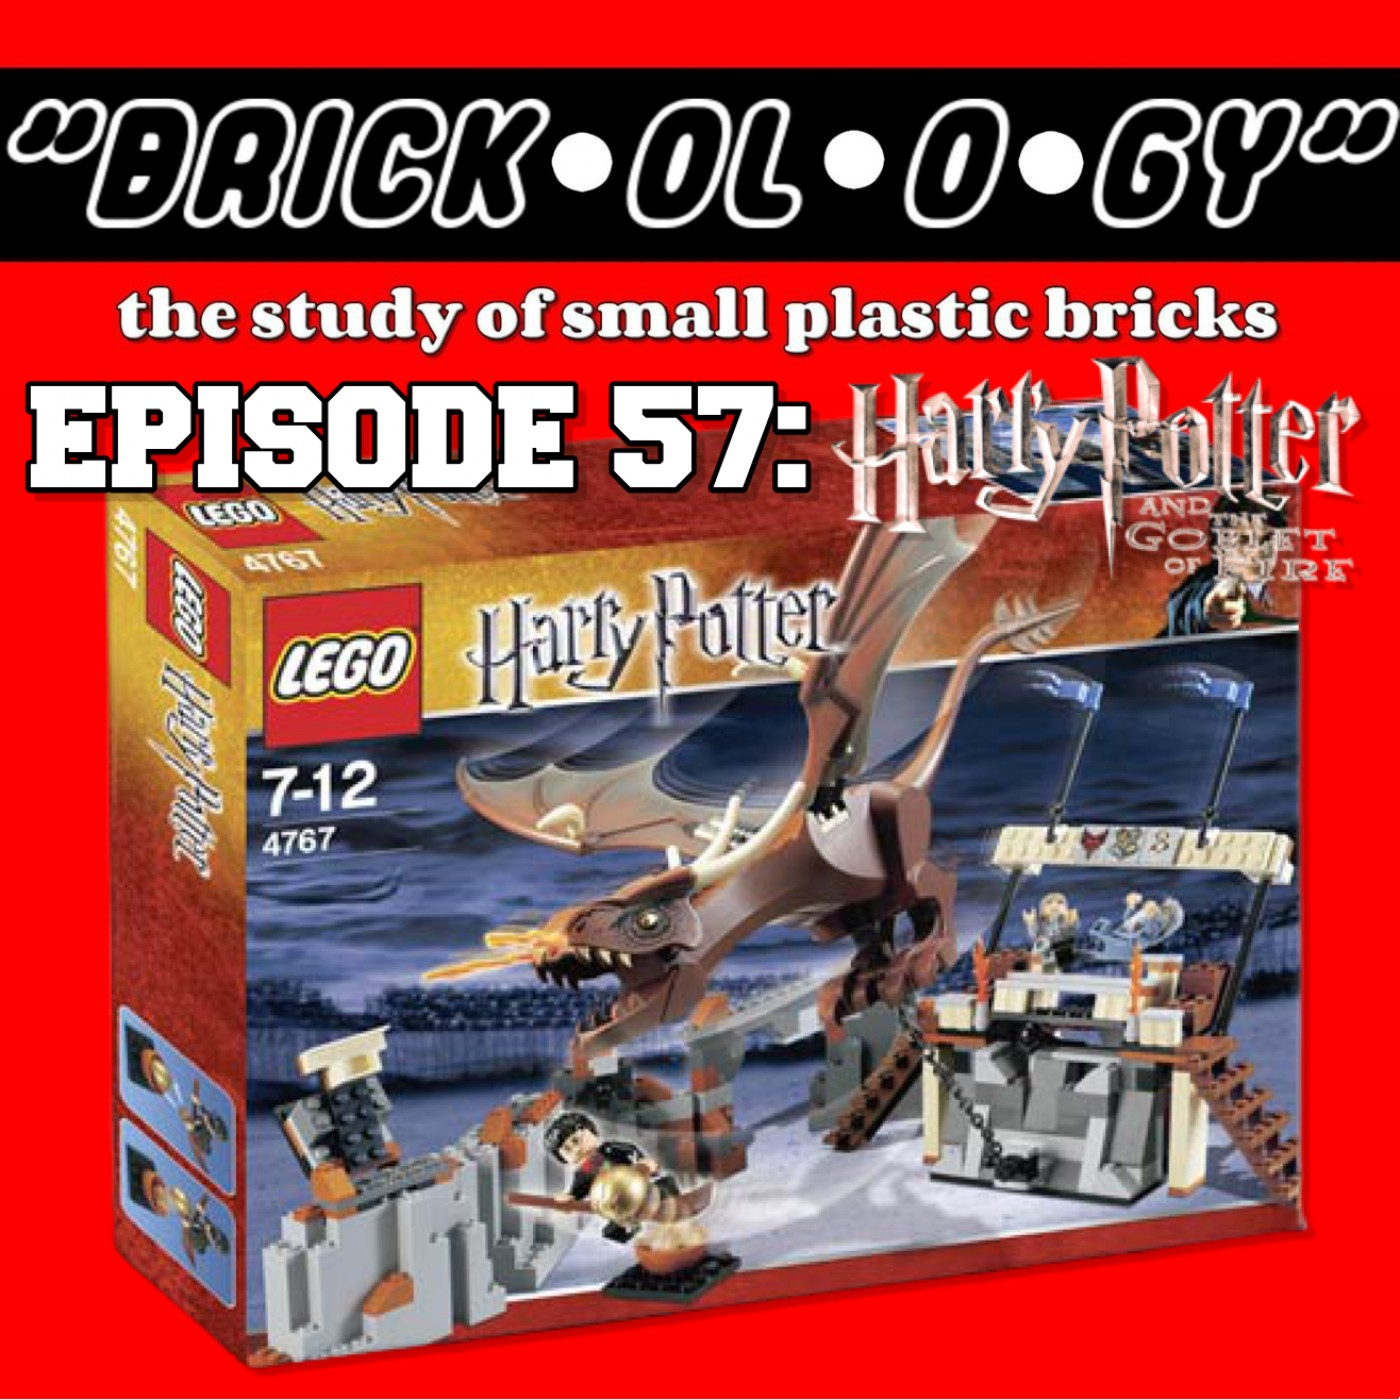 Brickology Episode 57 - LEGO Harry Potter and the Goblet of Fire